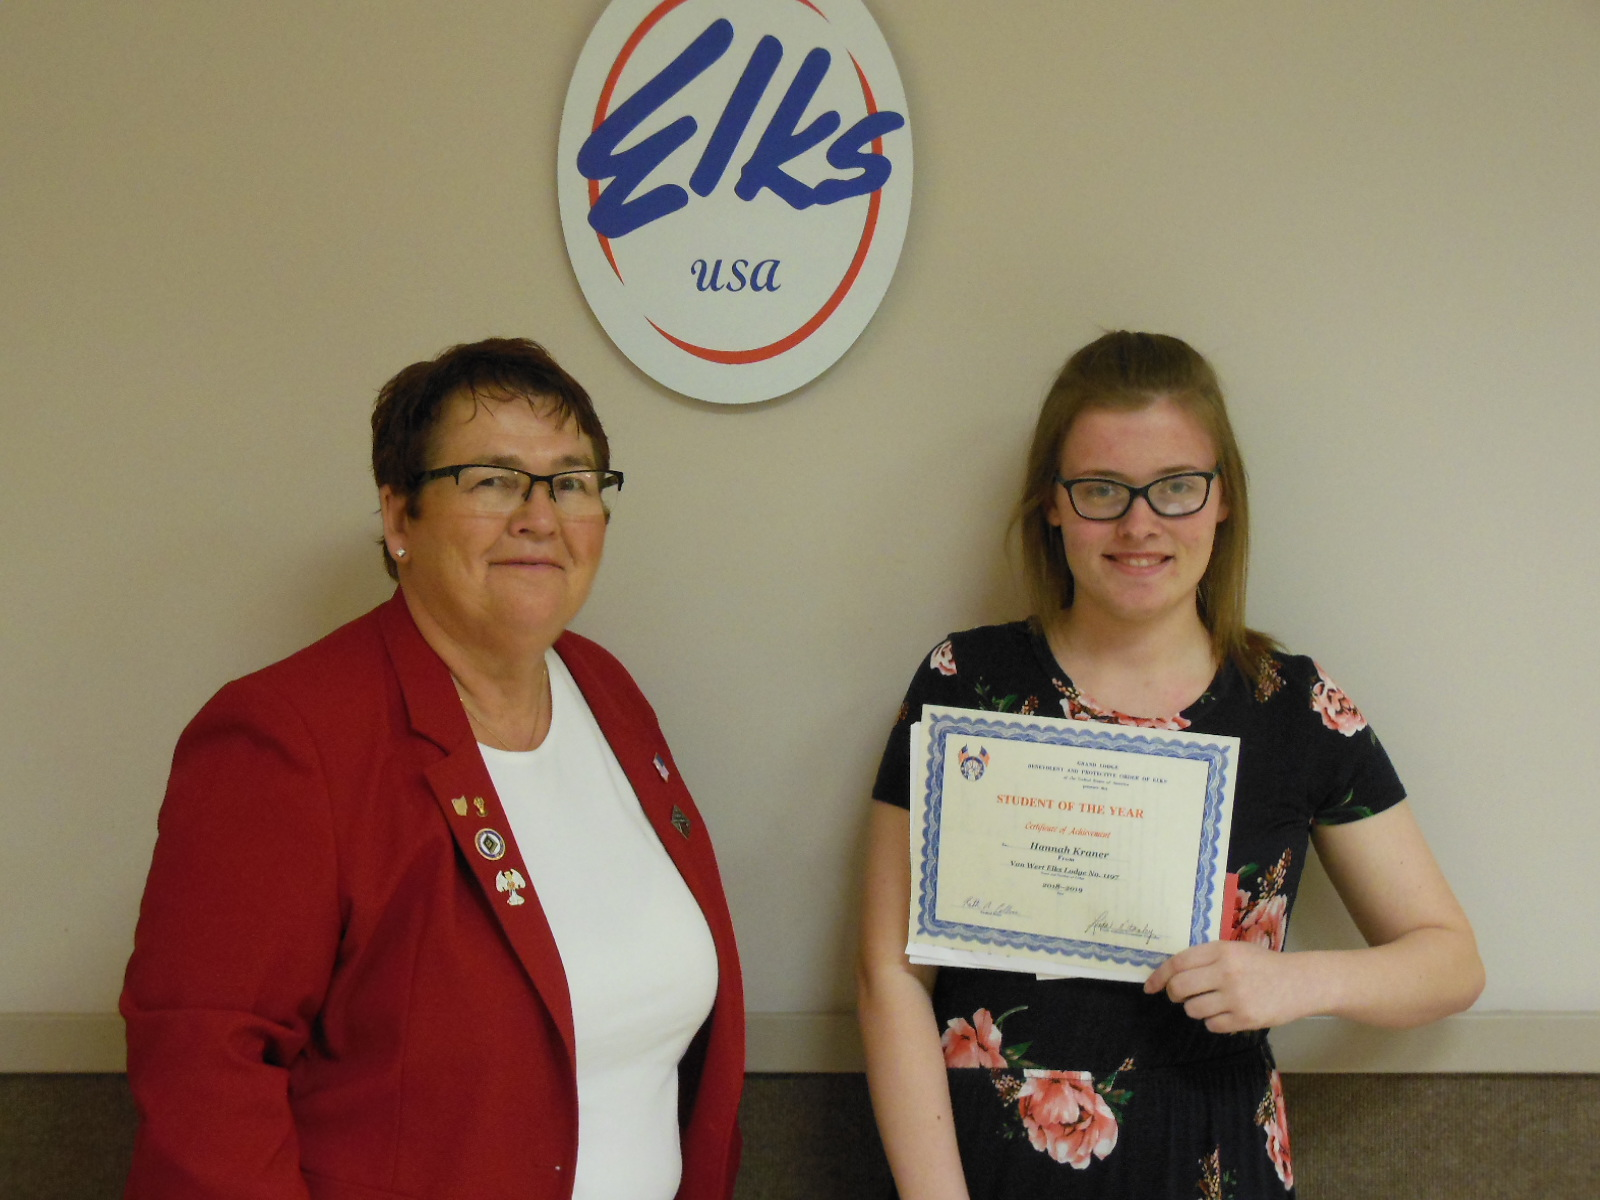 Pictured left to right are; Linda Stanley, Student of the Month Chair and Hanna Kraner.